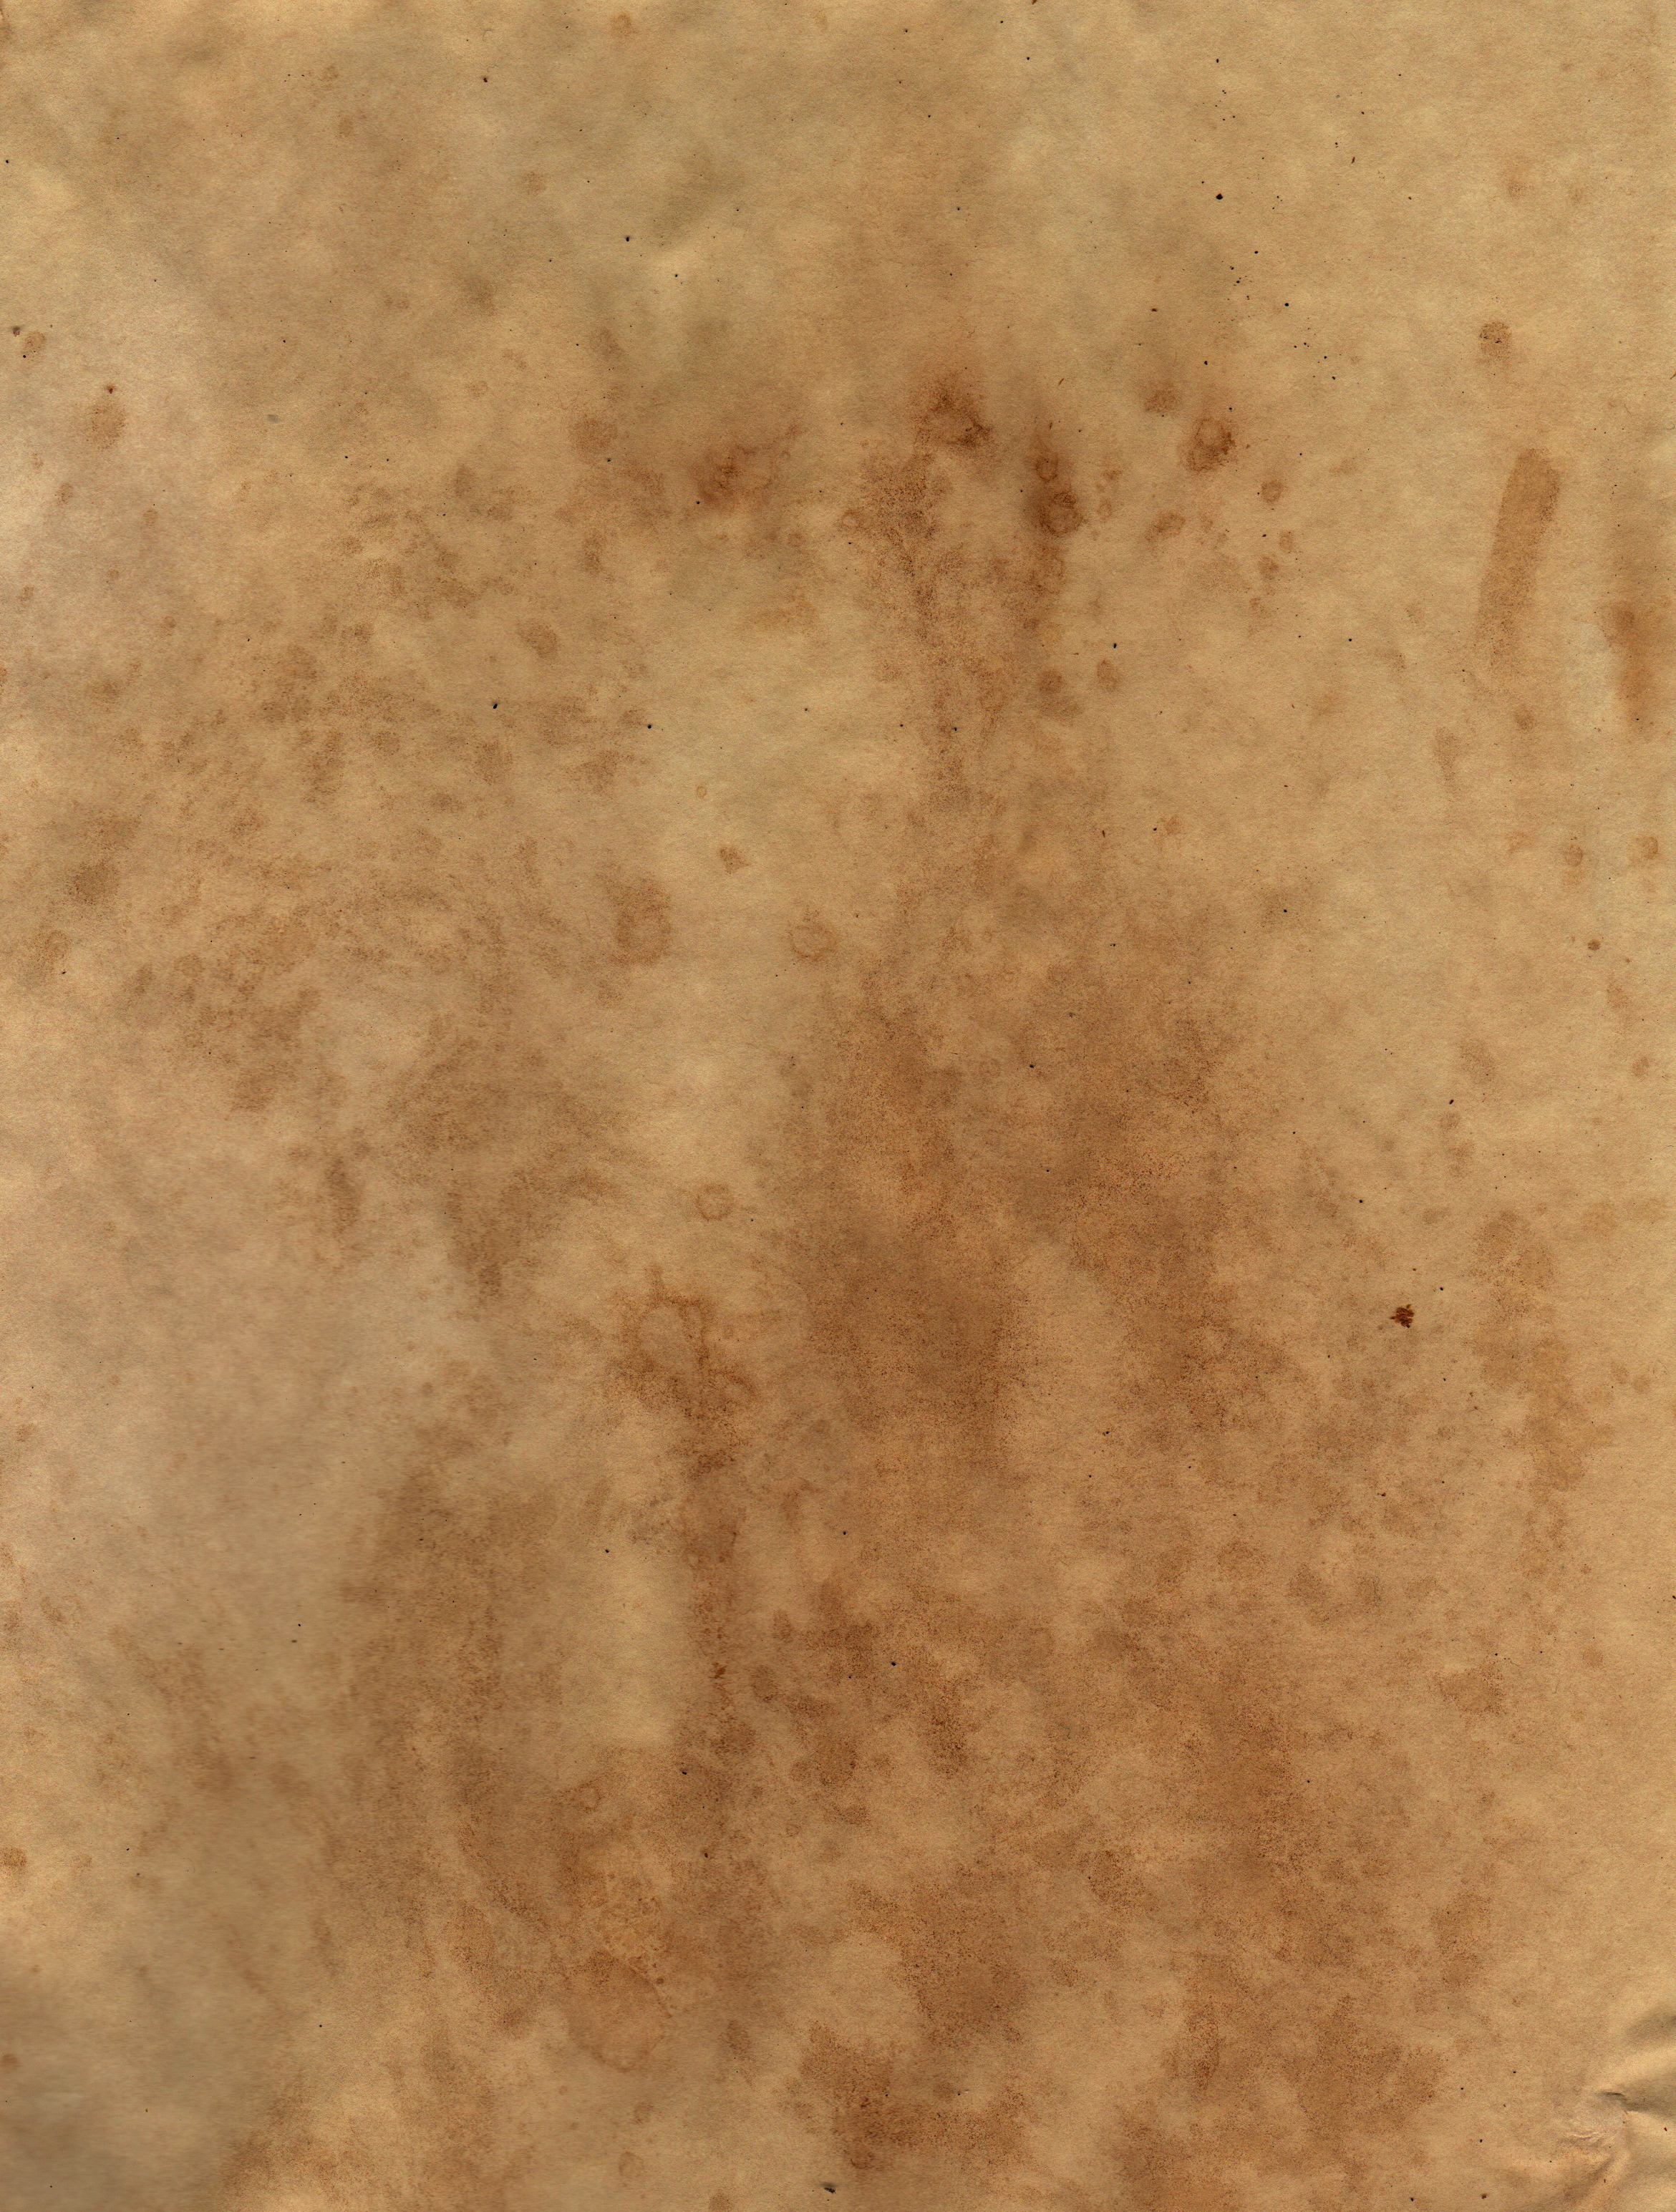 Free Hand Stained Brown Paper Texture Texture LT